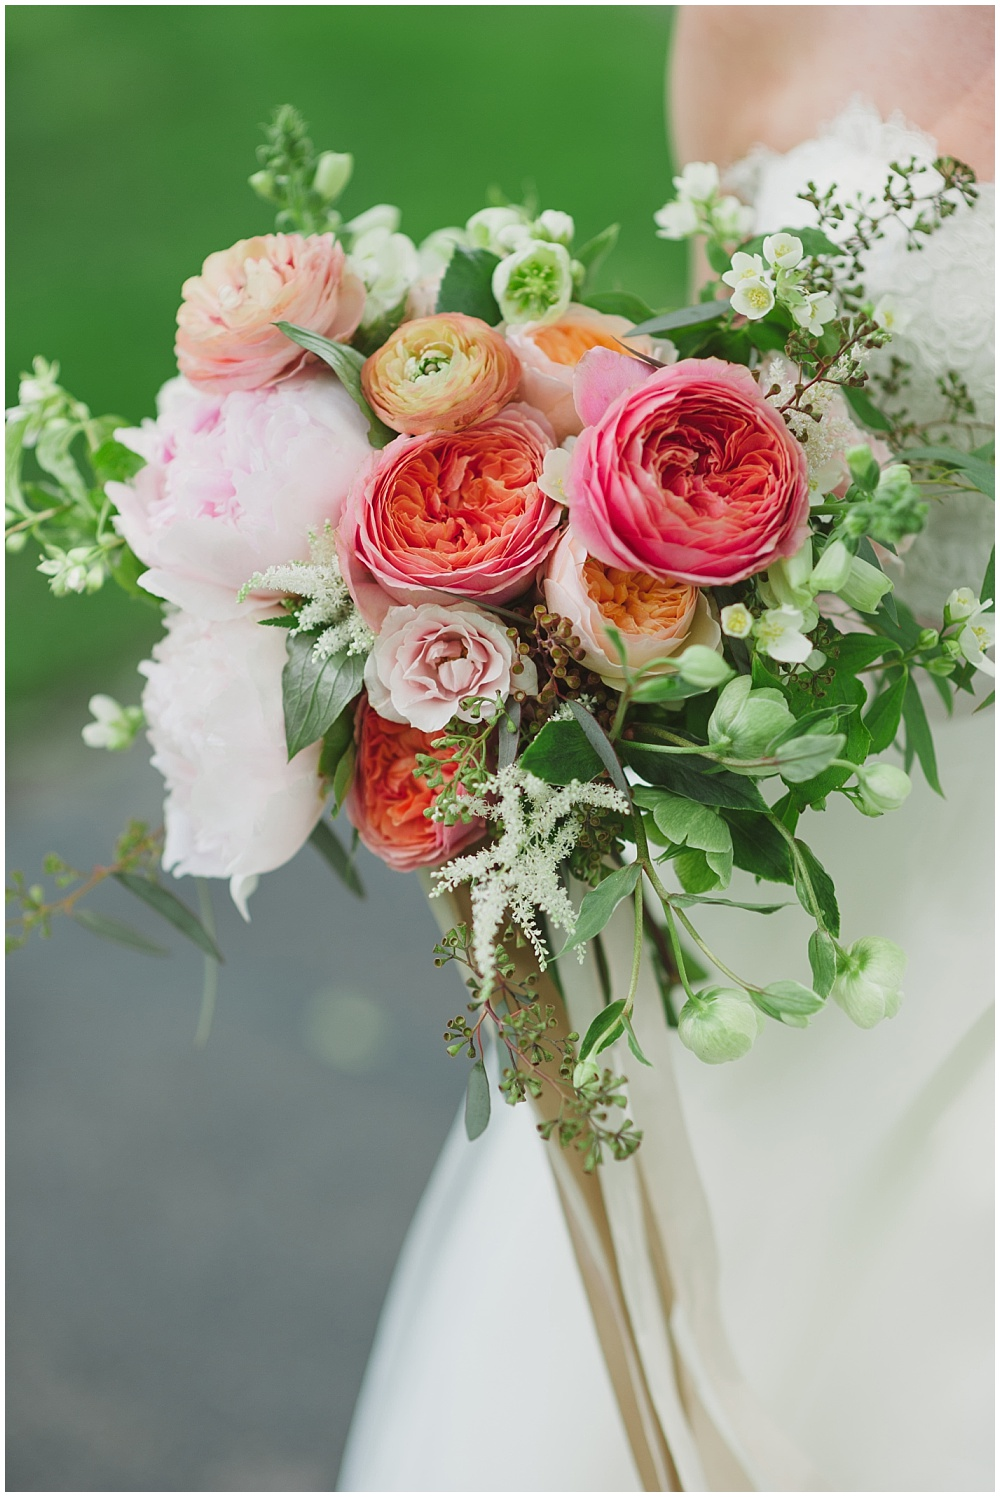 Blush, pink and green bridal bouquet with silk ribbon   Ritz Charles Garden Pavilion Wedding by Stacy Able Photography & Jessica Dum Wedding Coordination